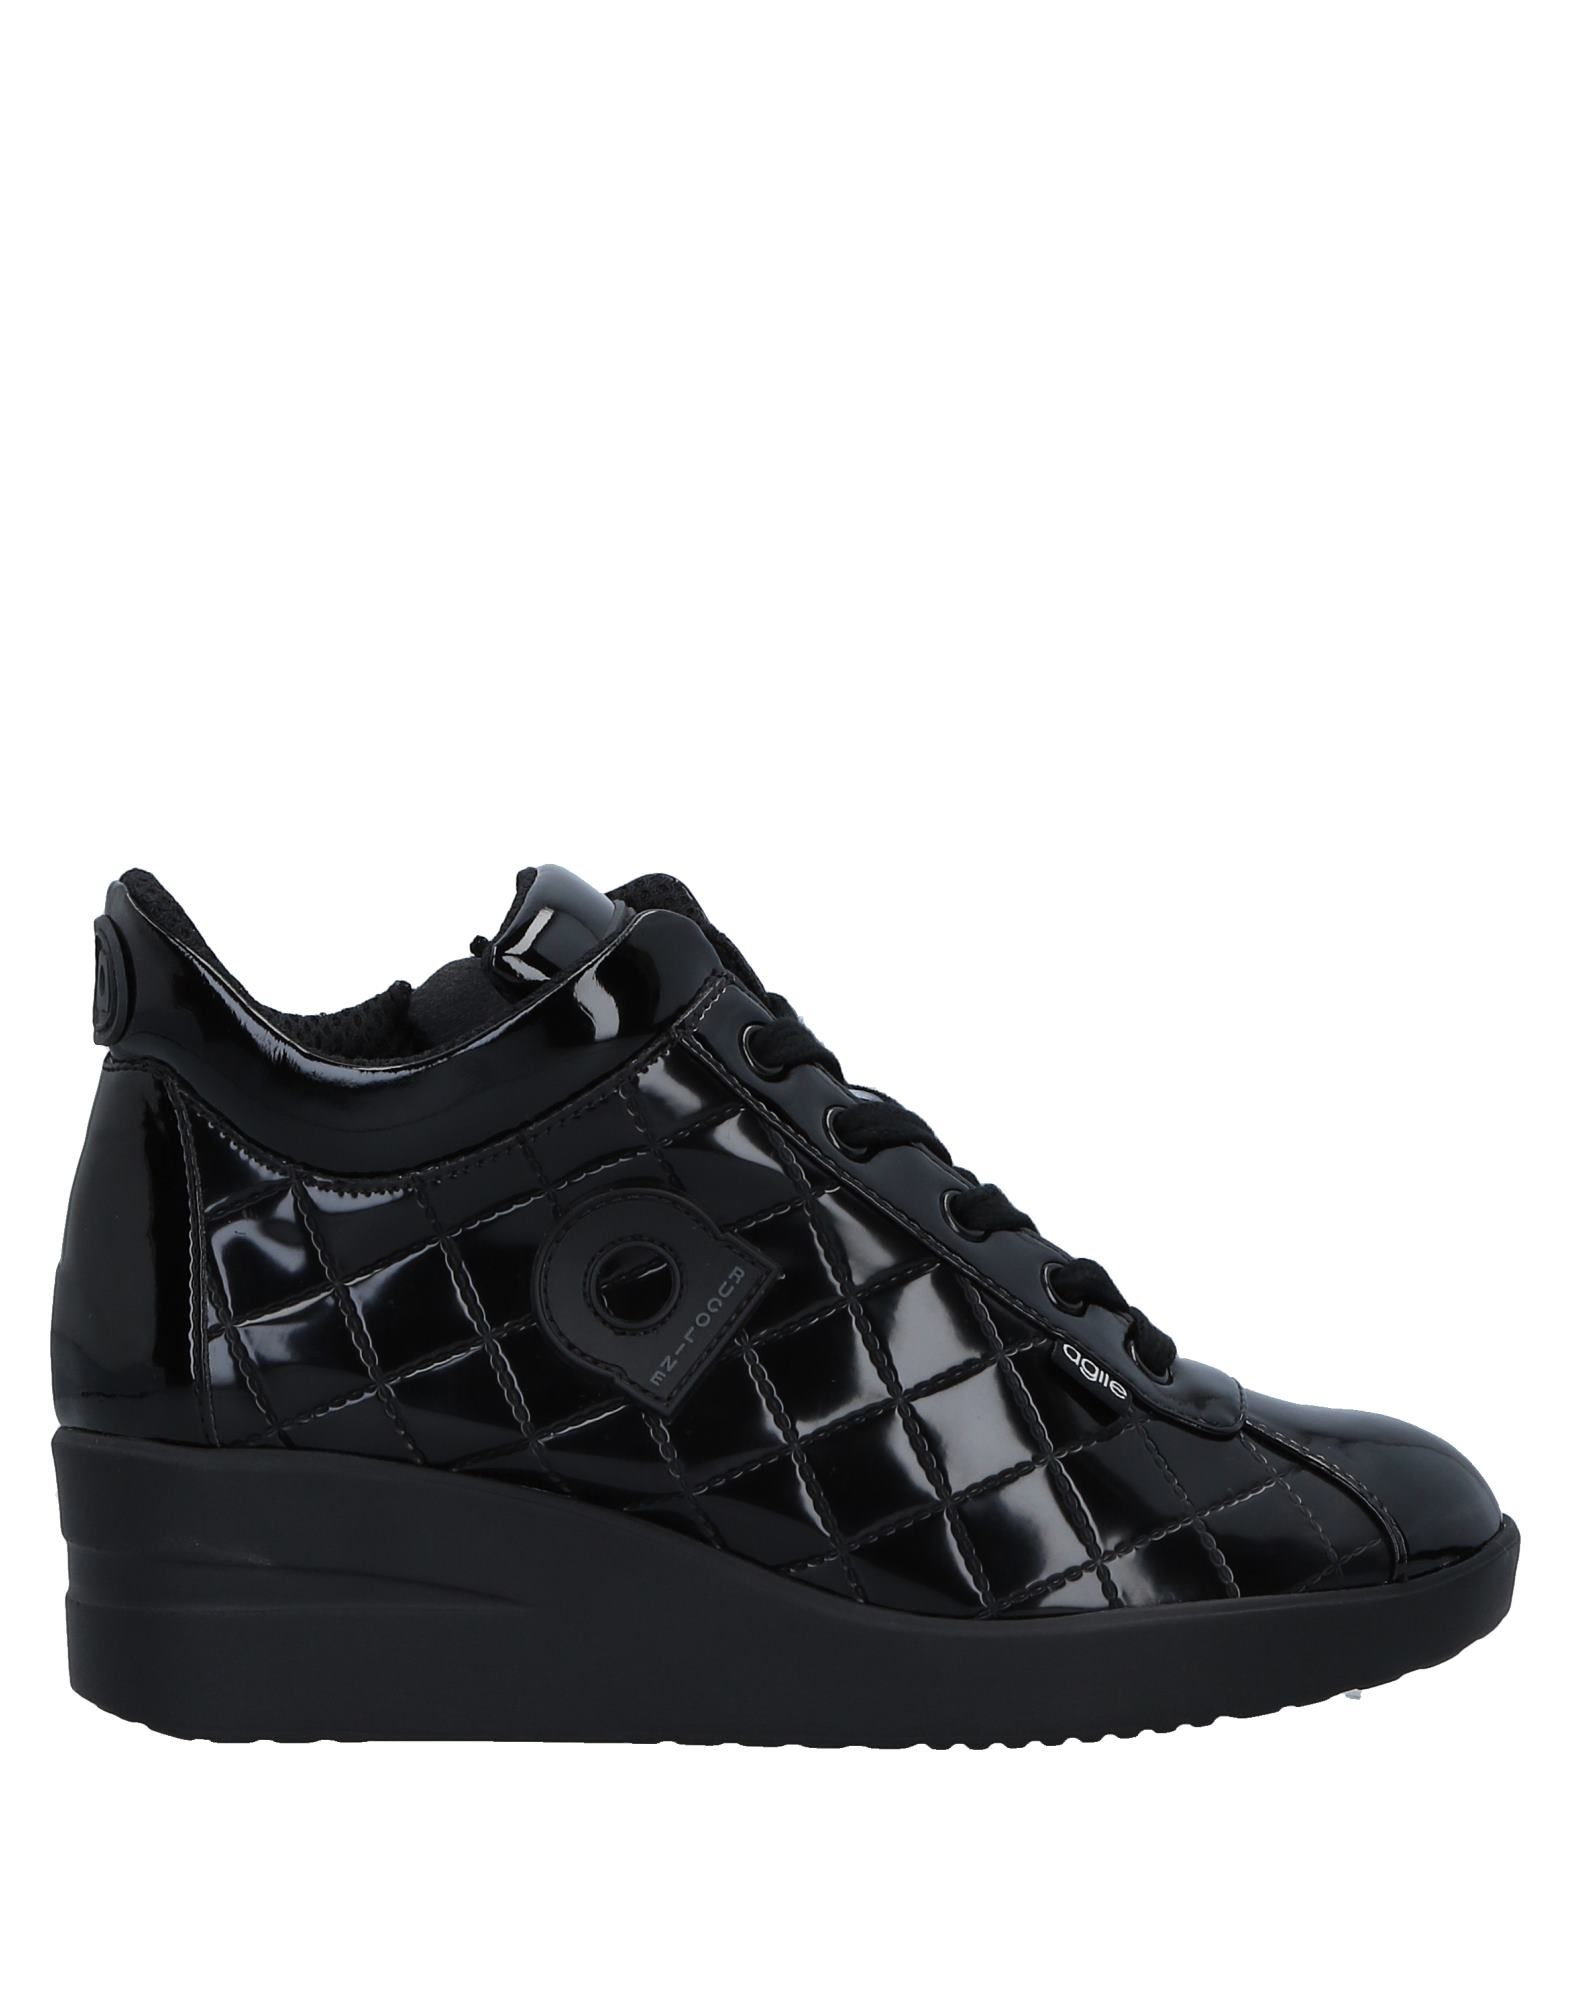 Agile By Rucoline Sneakers - Women Agile By Rucoline United Sneakers online on  United Rucoline Kingdom - 11498449QA 636737